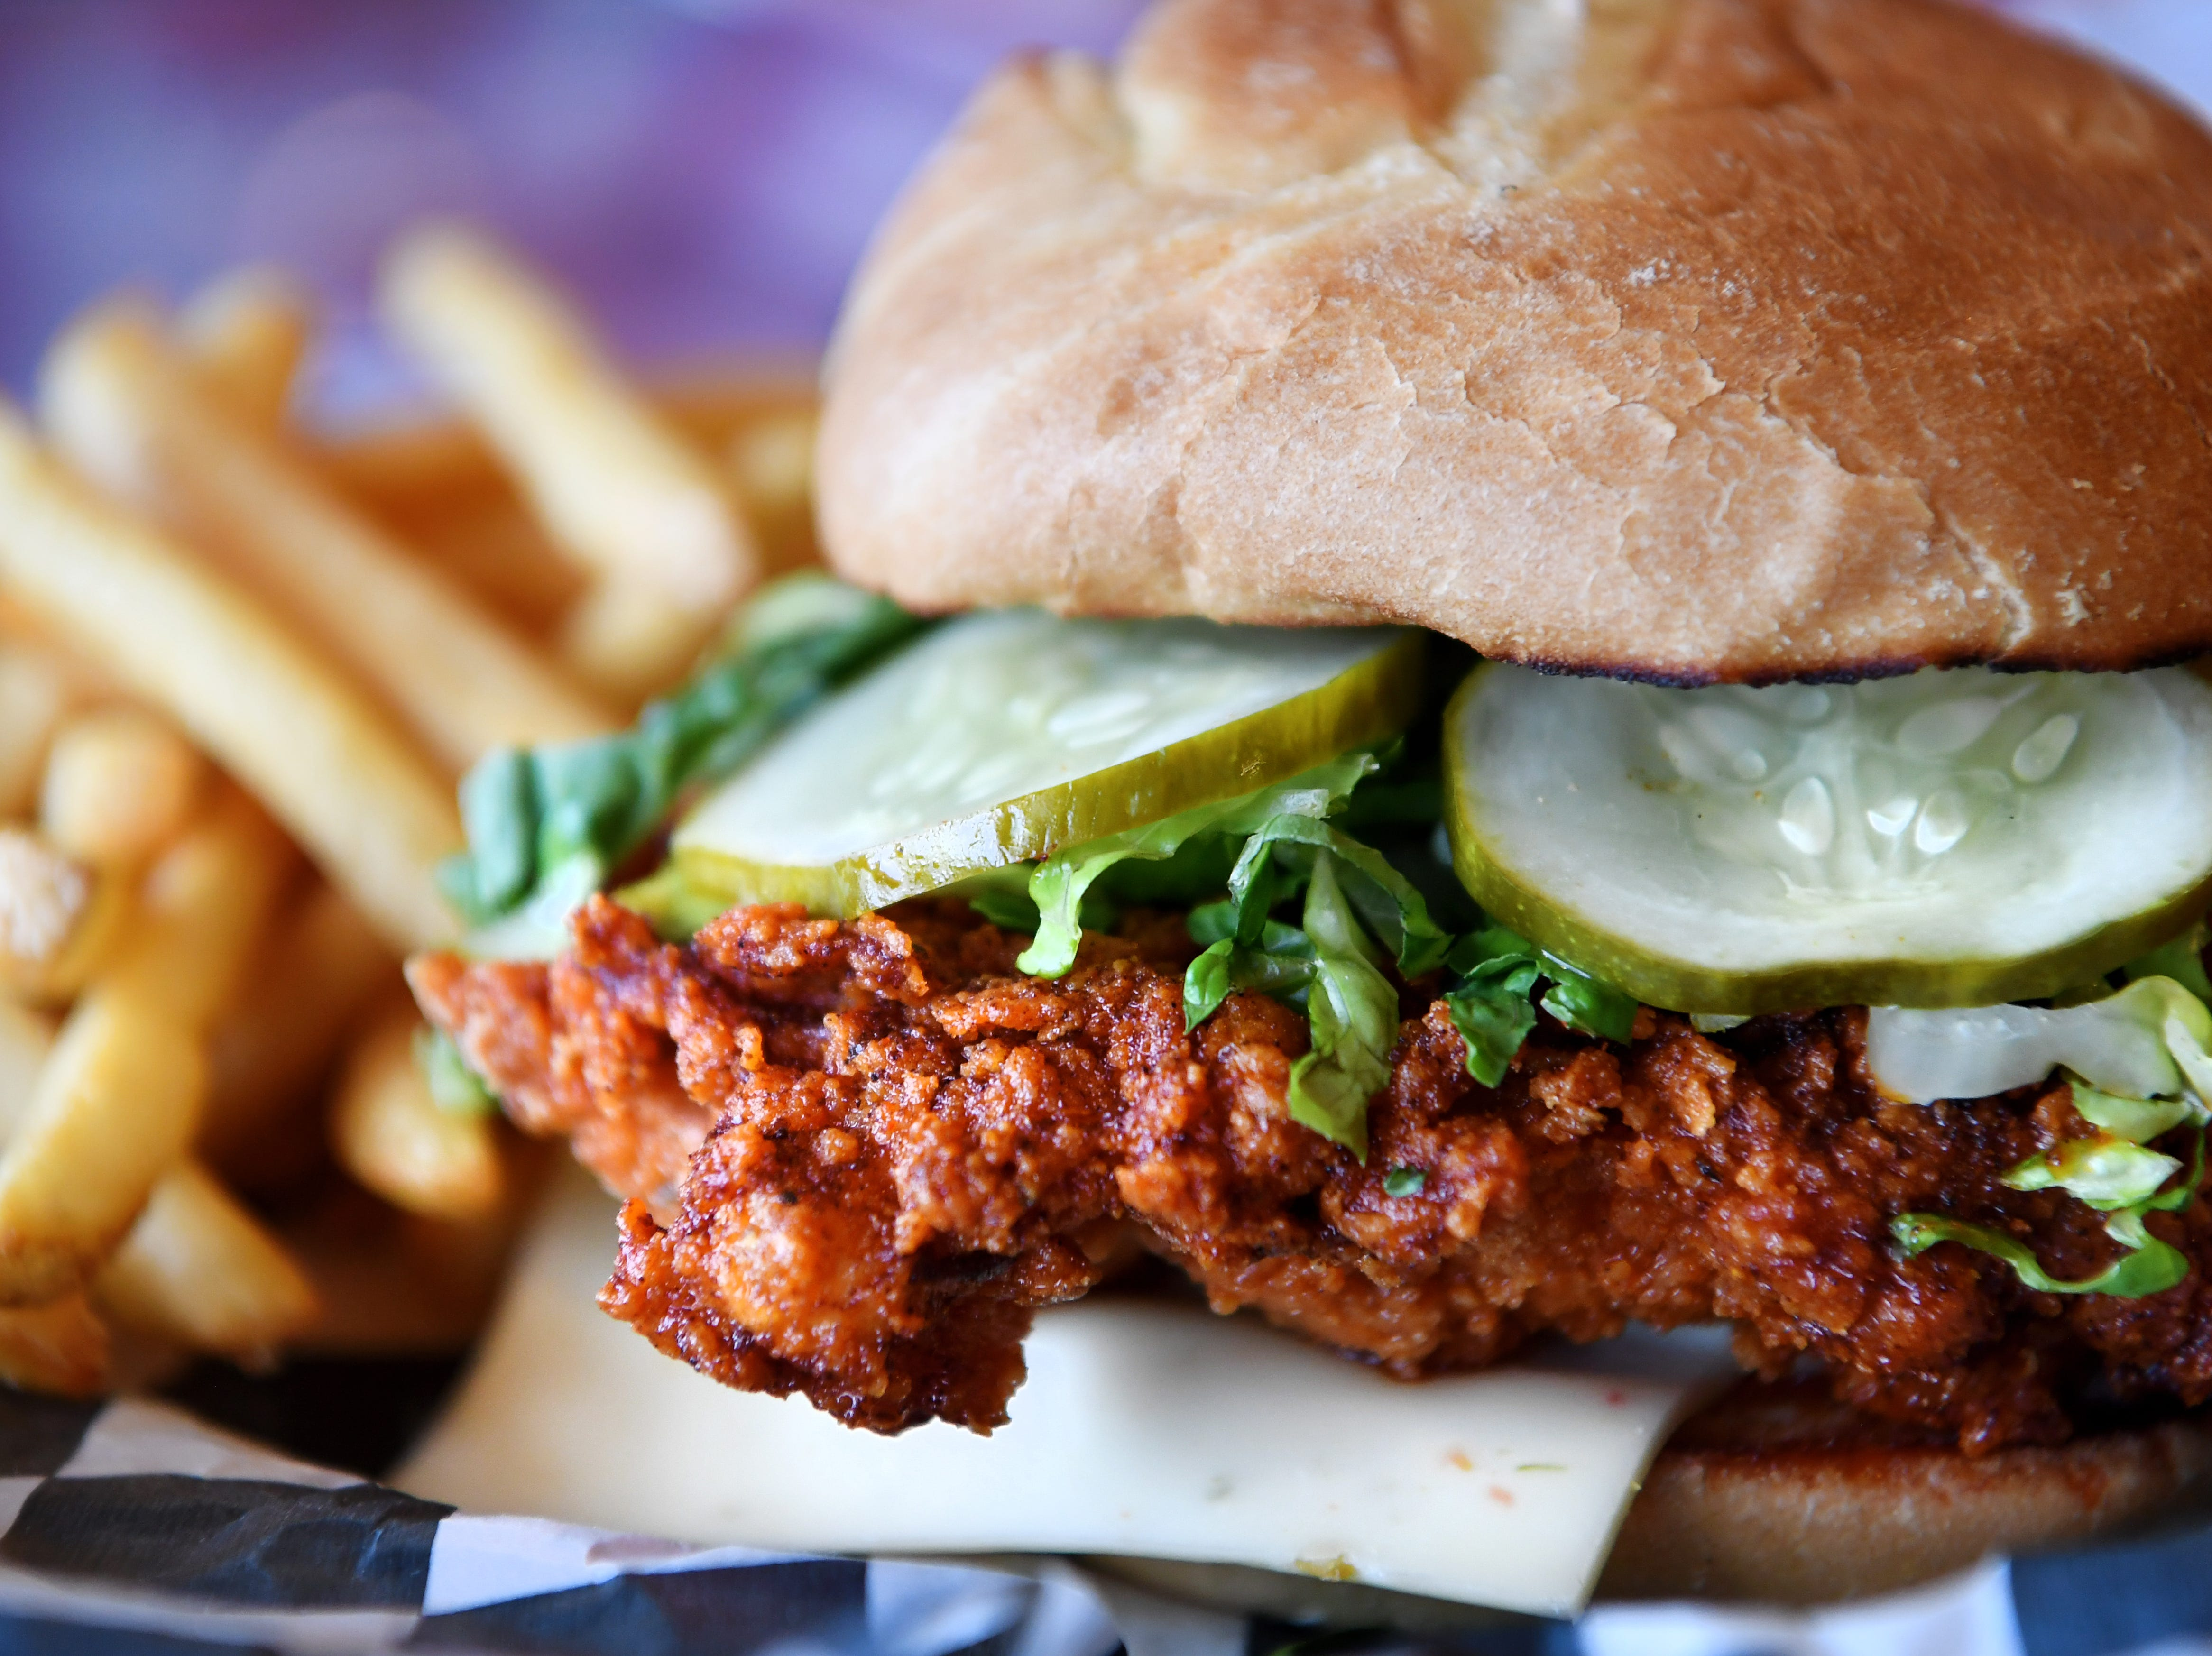 The Nashville hot chicken sandwich from Henrietta's Poultry Shoppe in the River Arts District Dec. 7, 2018.